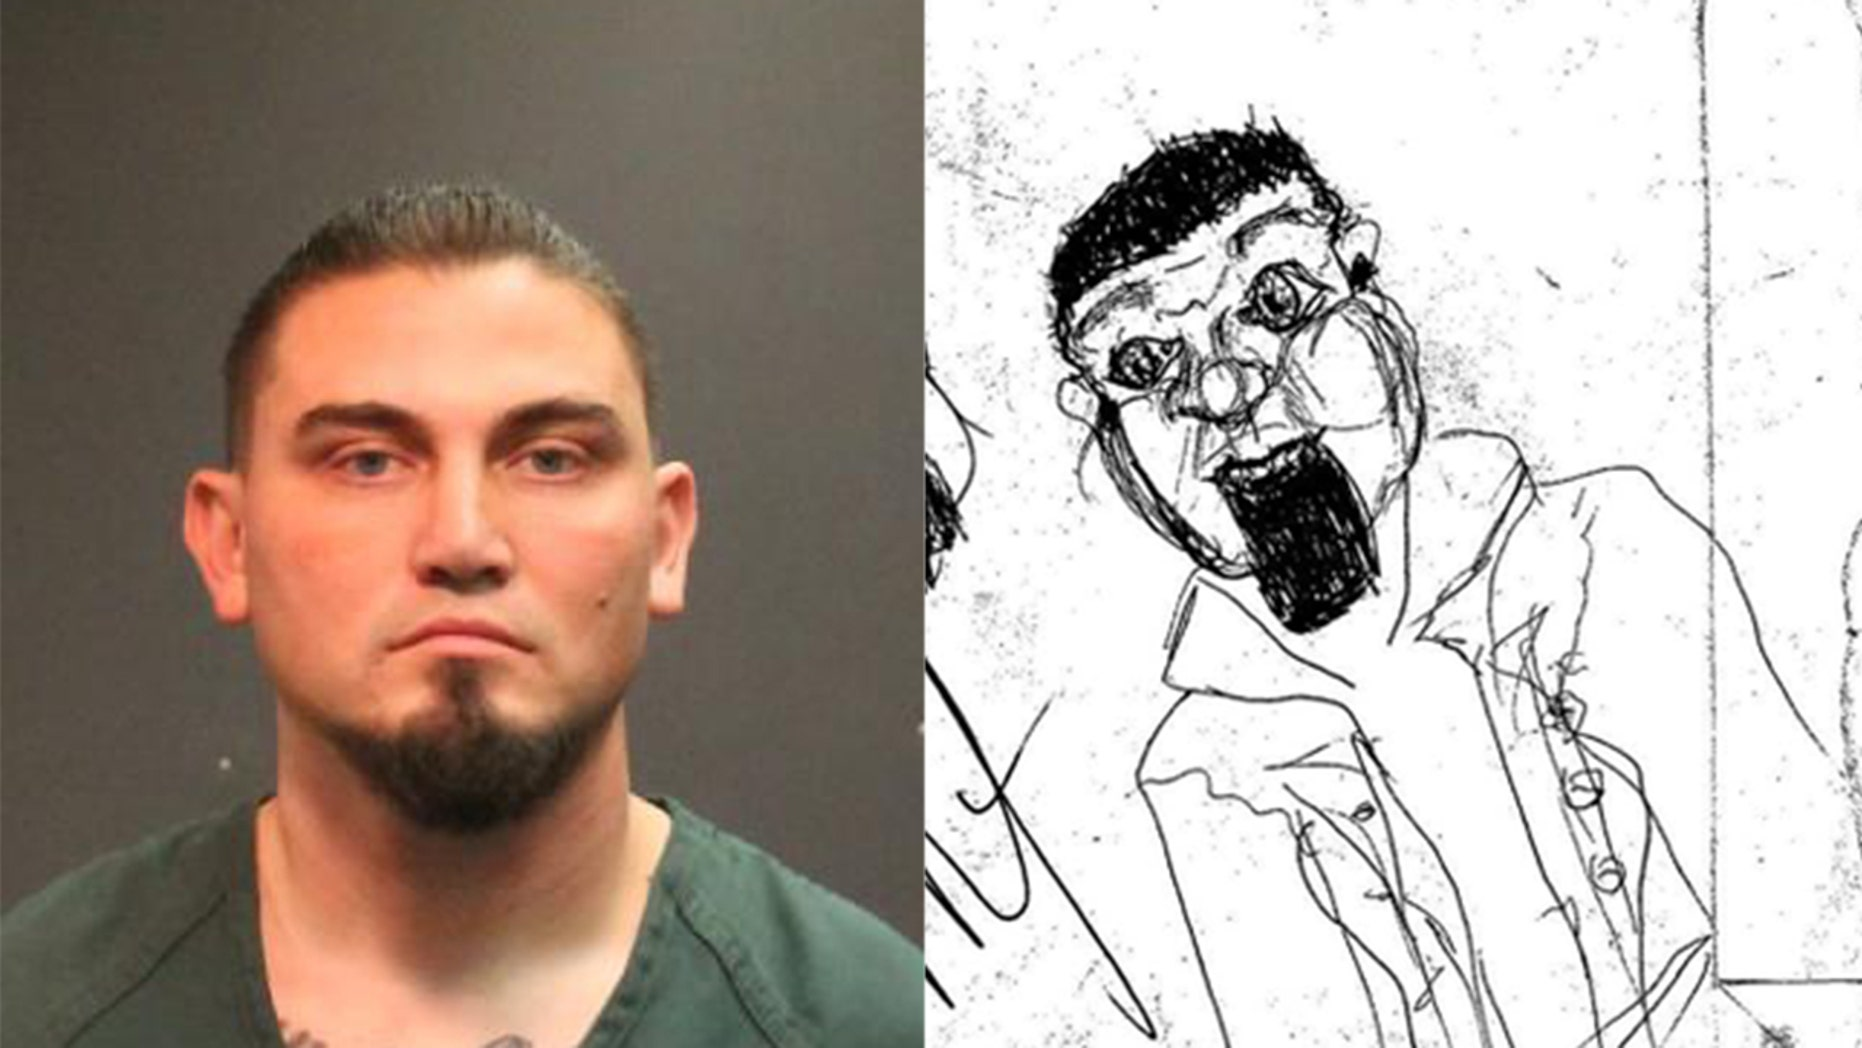 James Anthony Lawlor (left) and a sketch by a homeless person he is accused of attacking (right).